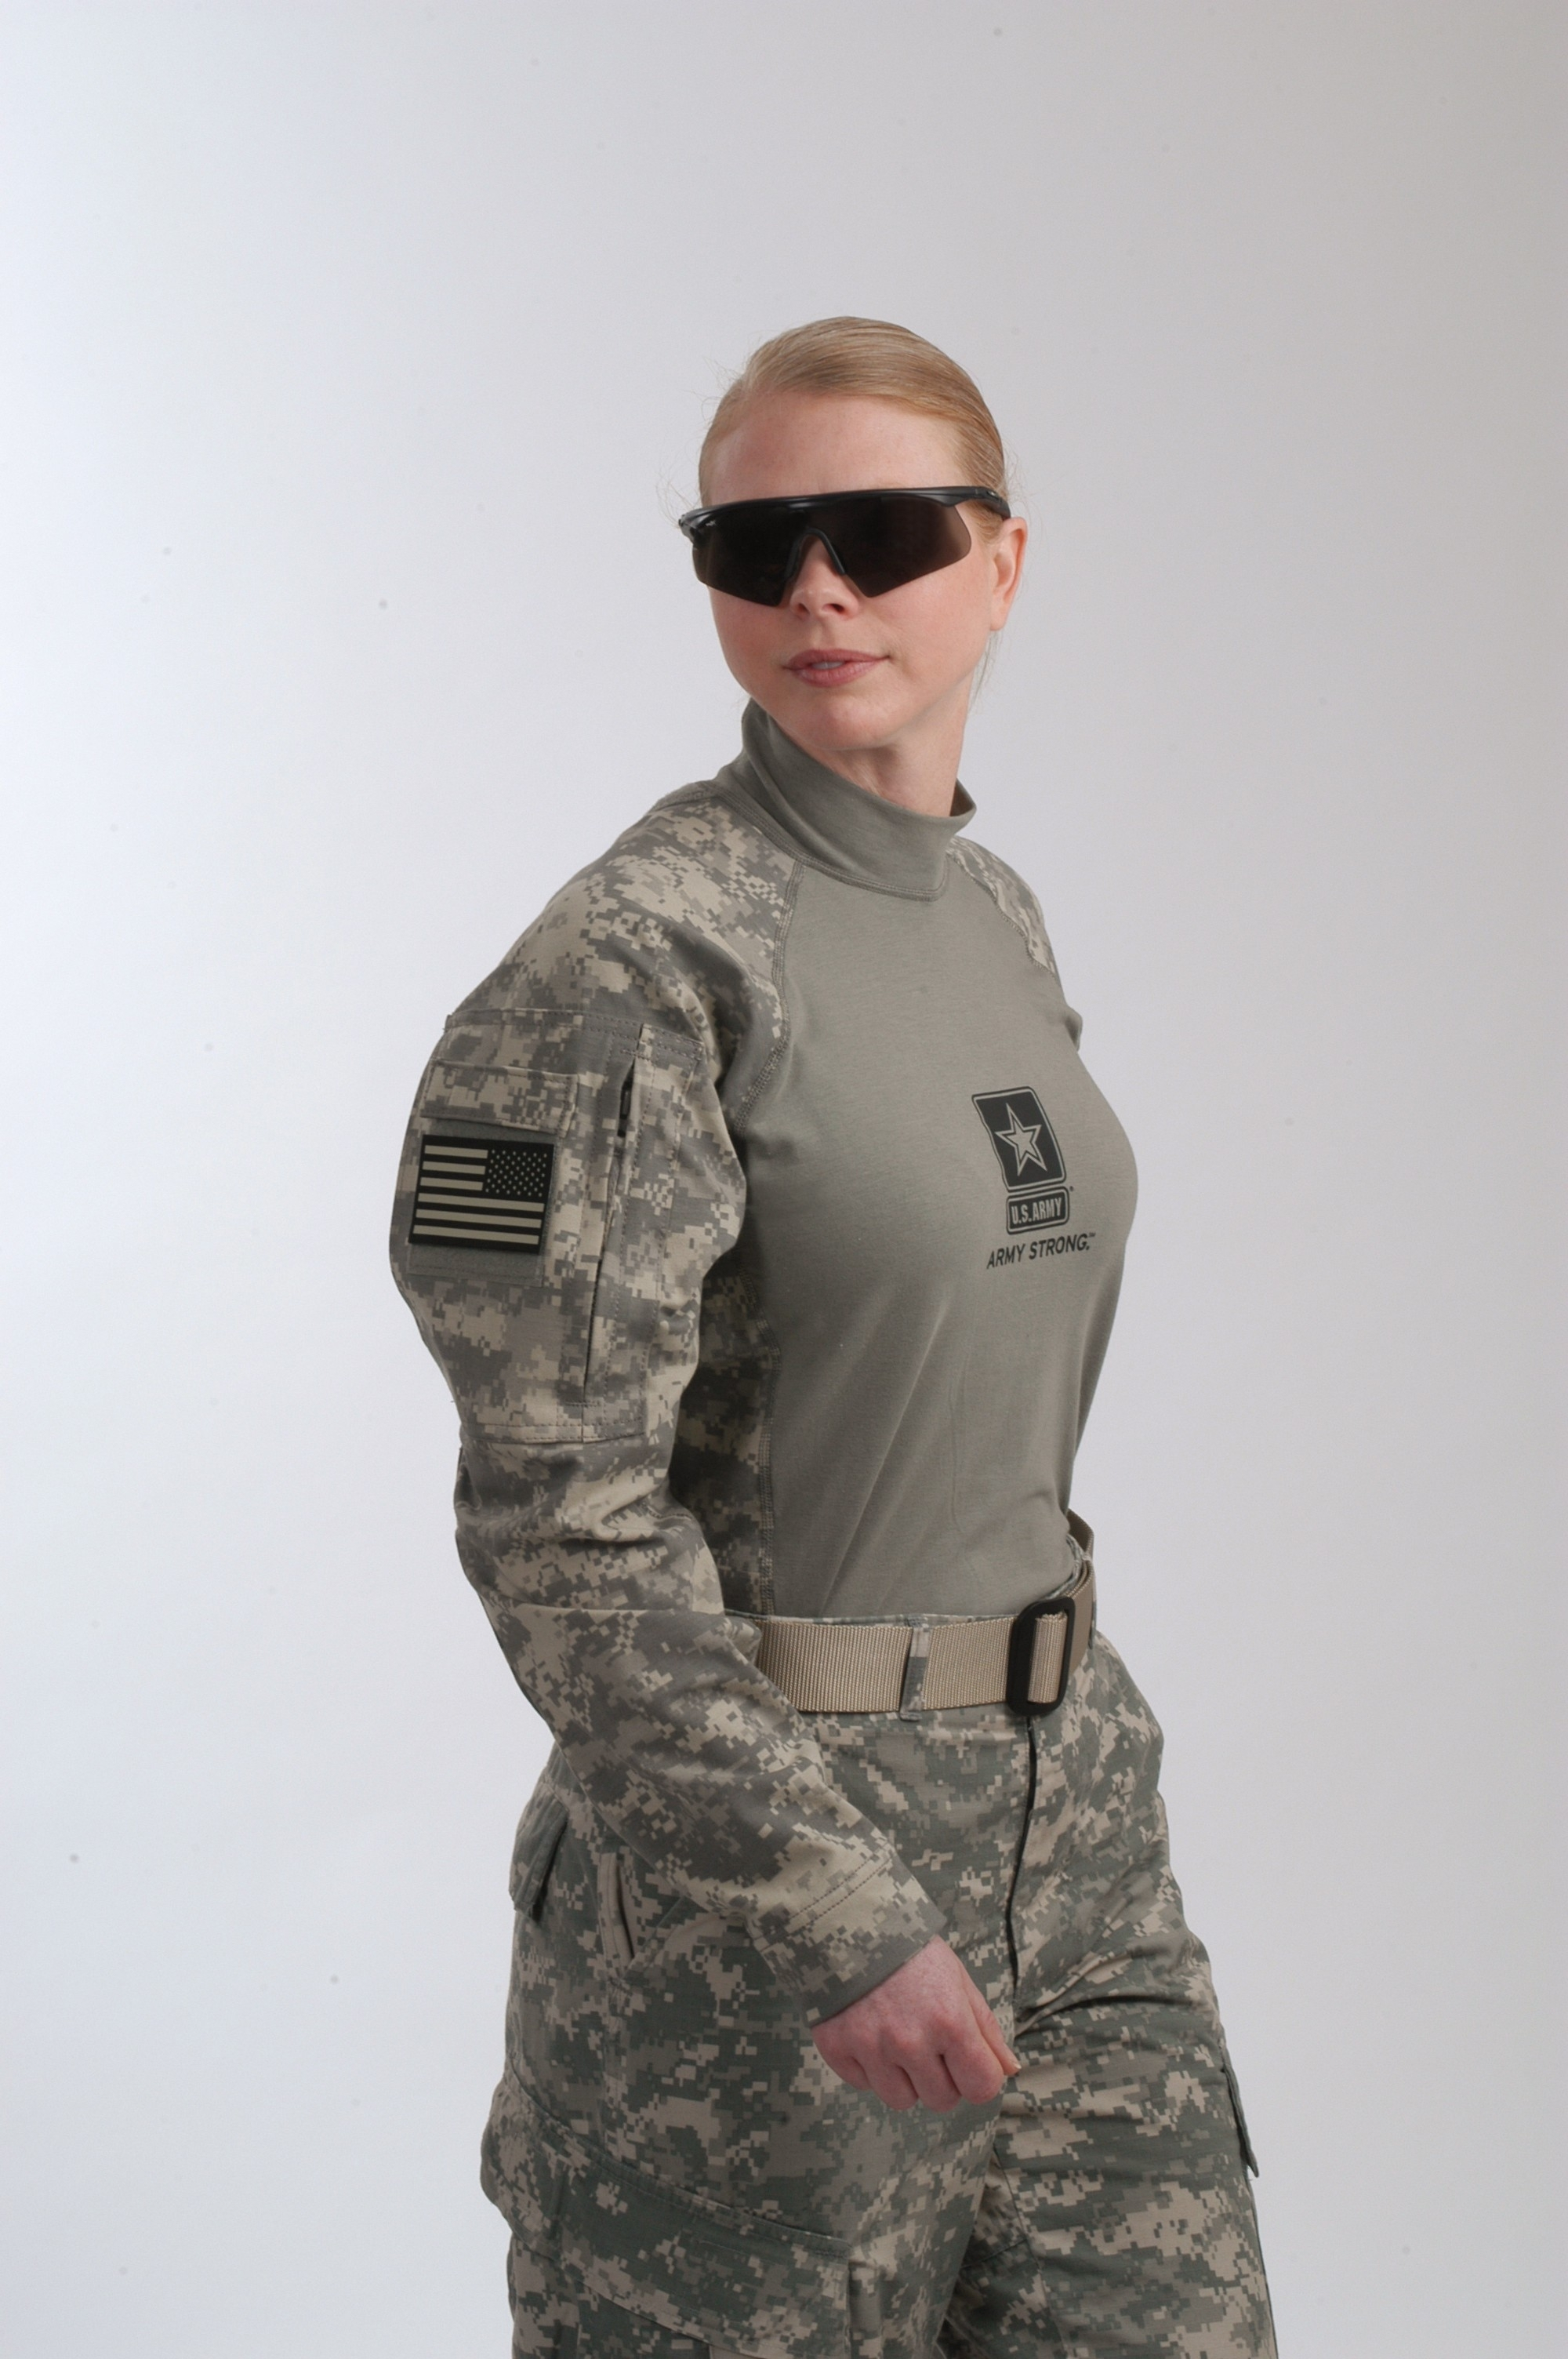 magasin d'usine 152c7 3d982 Army Combat Shirt | Military Wiki | FANDOM powered by Wikia